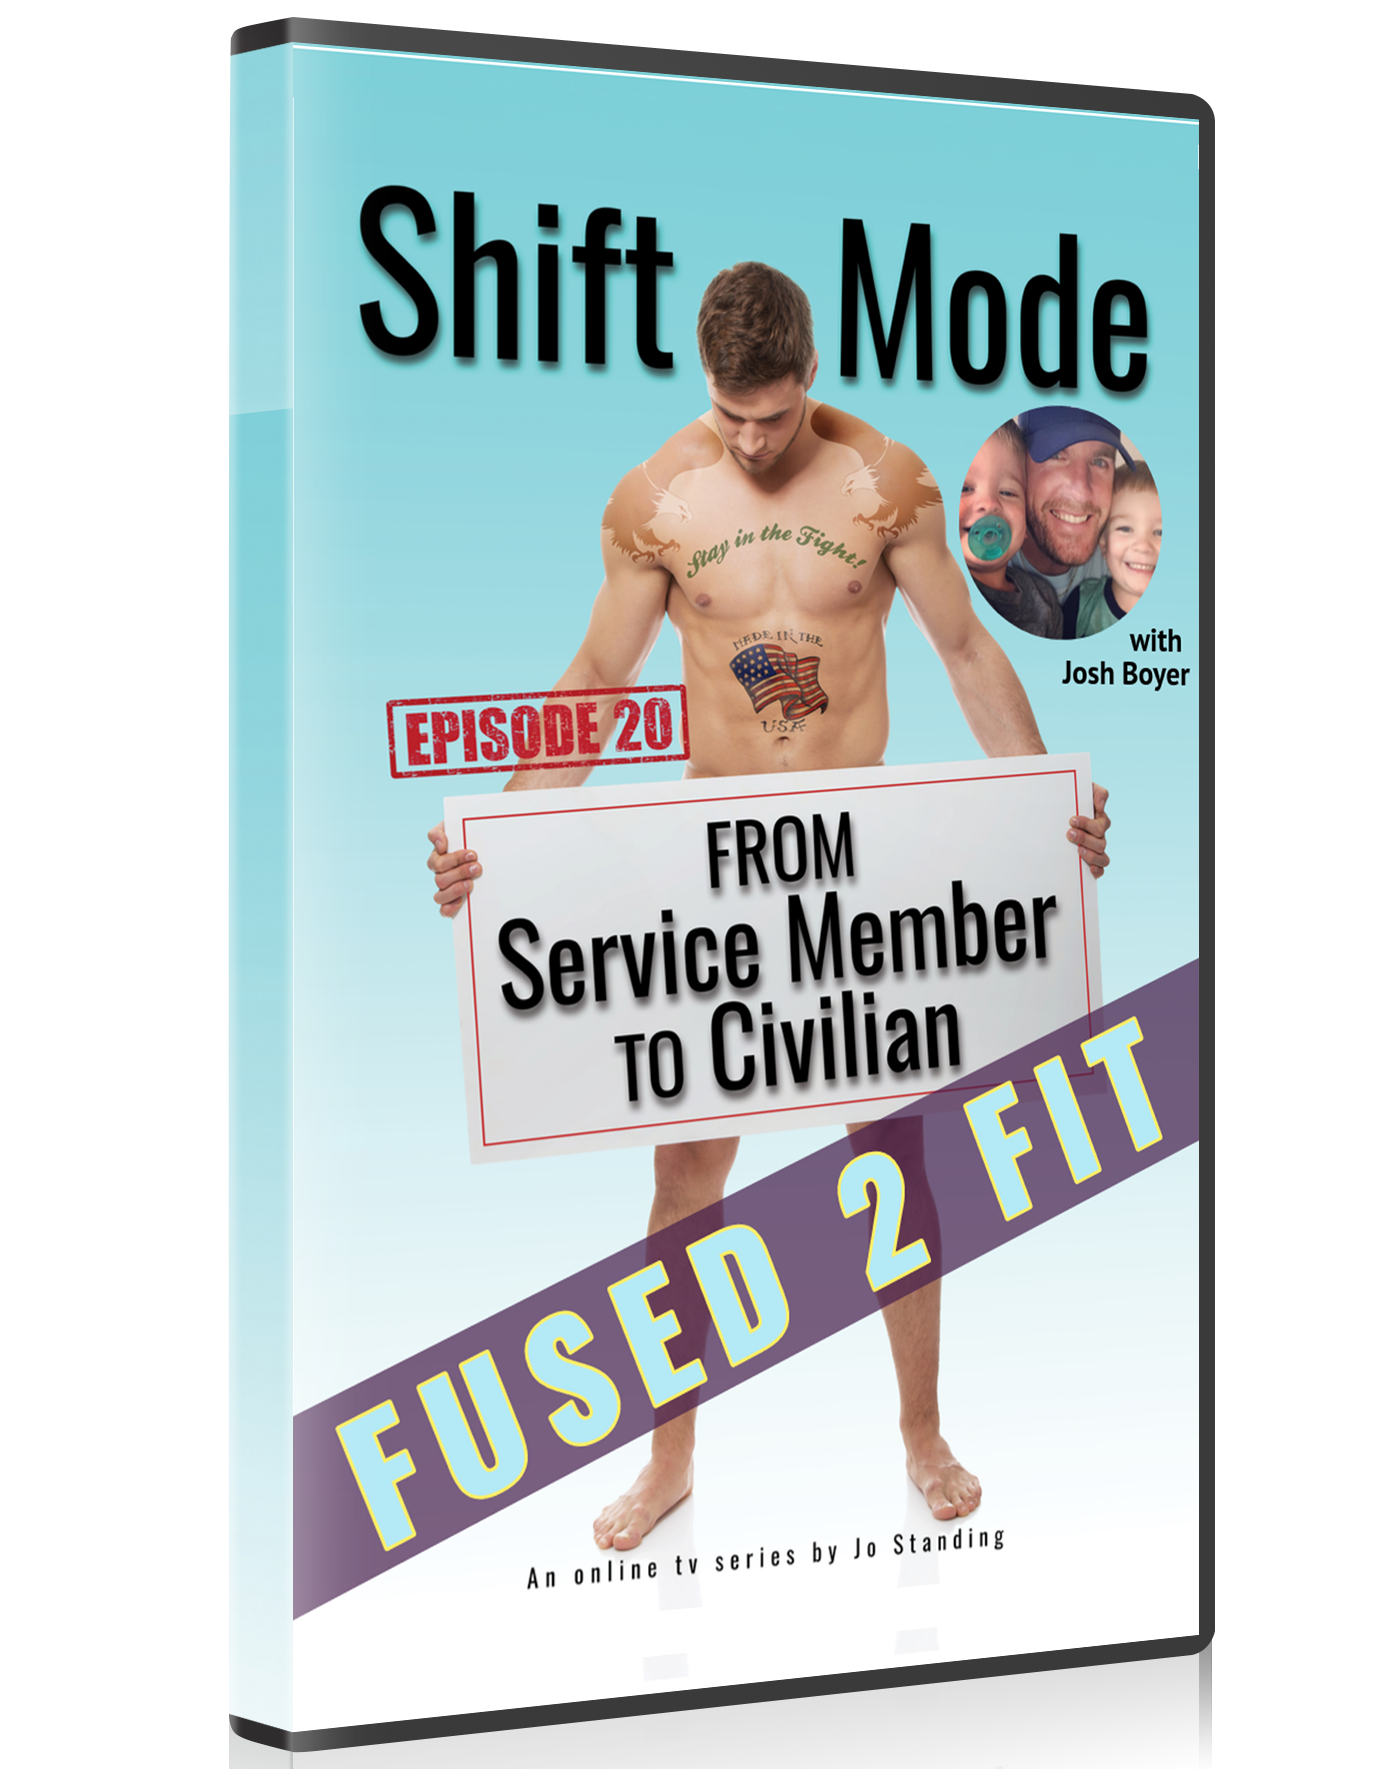 JoshBoyer-ShiftMode-20-Fused2Fit.png